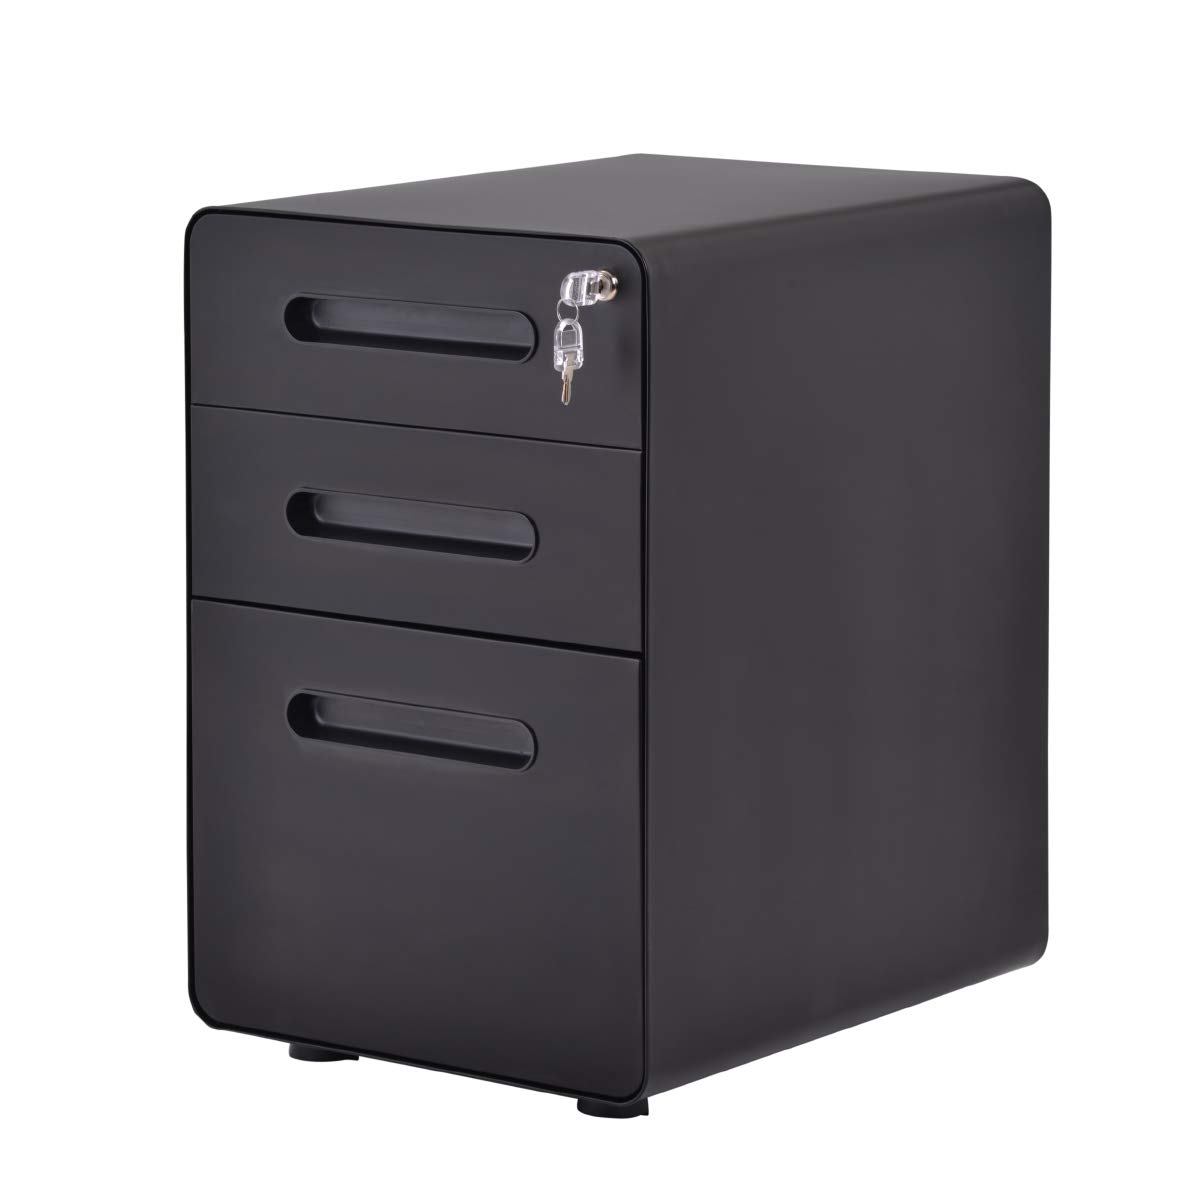 Merax File Cabinet Mobile 3 Drawer Metal Pedestal Filing Cabinets with Lock Key 5 Rolling Casters Fully Assembled for Home Office Hanging Folders A4 Letter Legal Size